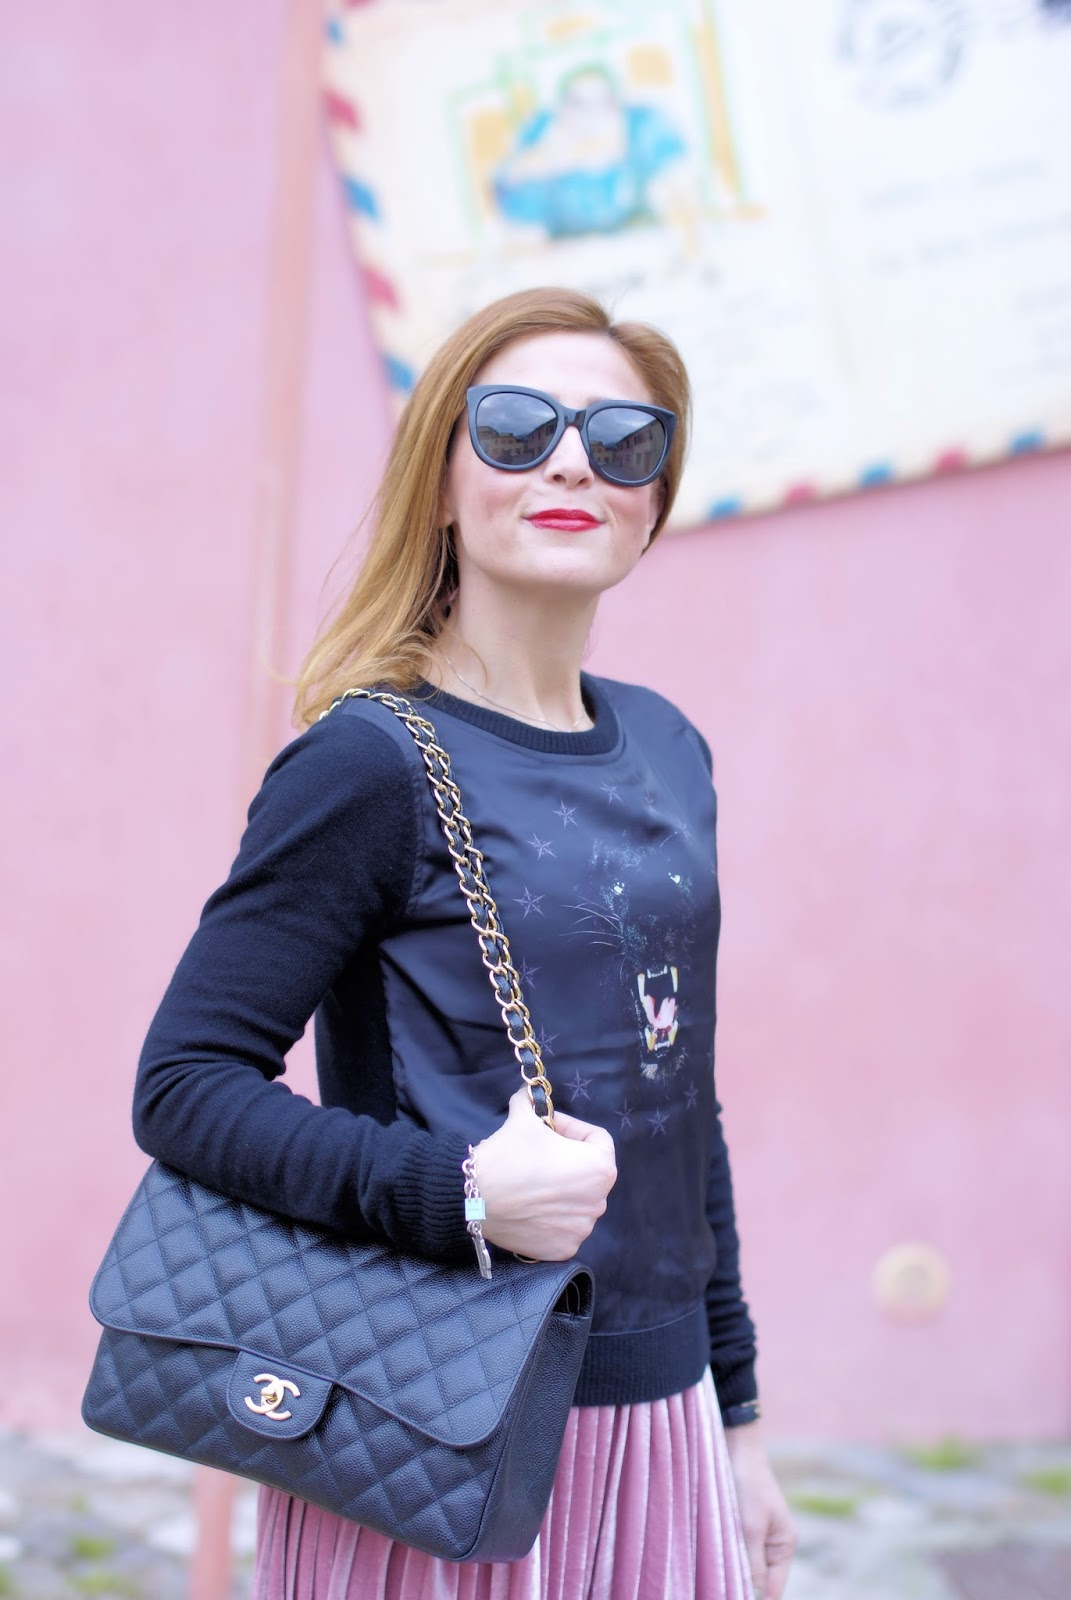 Cesare Paciotti panther sweater, Chanel 2.55 caviar leather on Fashion and Cookies fashion blog, fashion blogger style